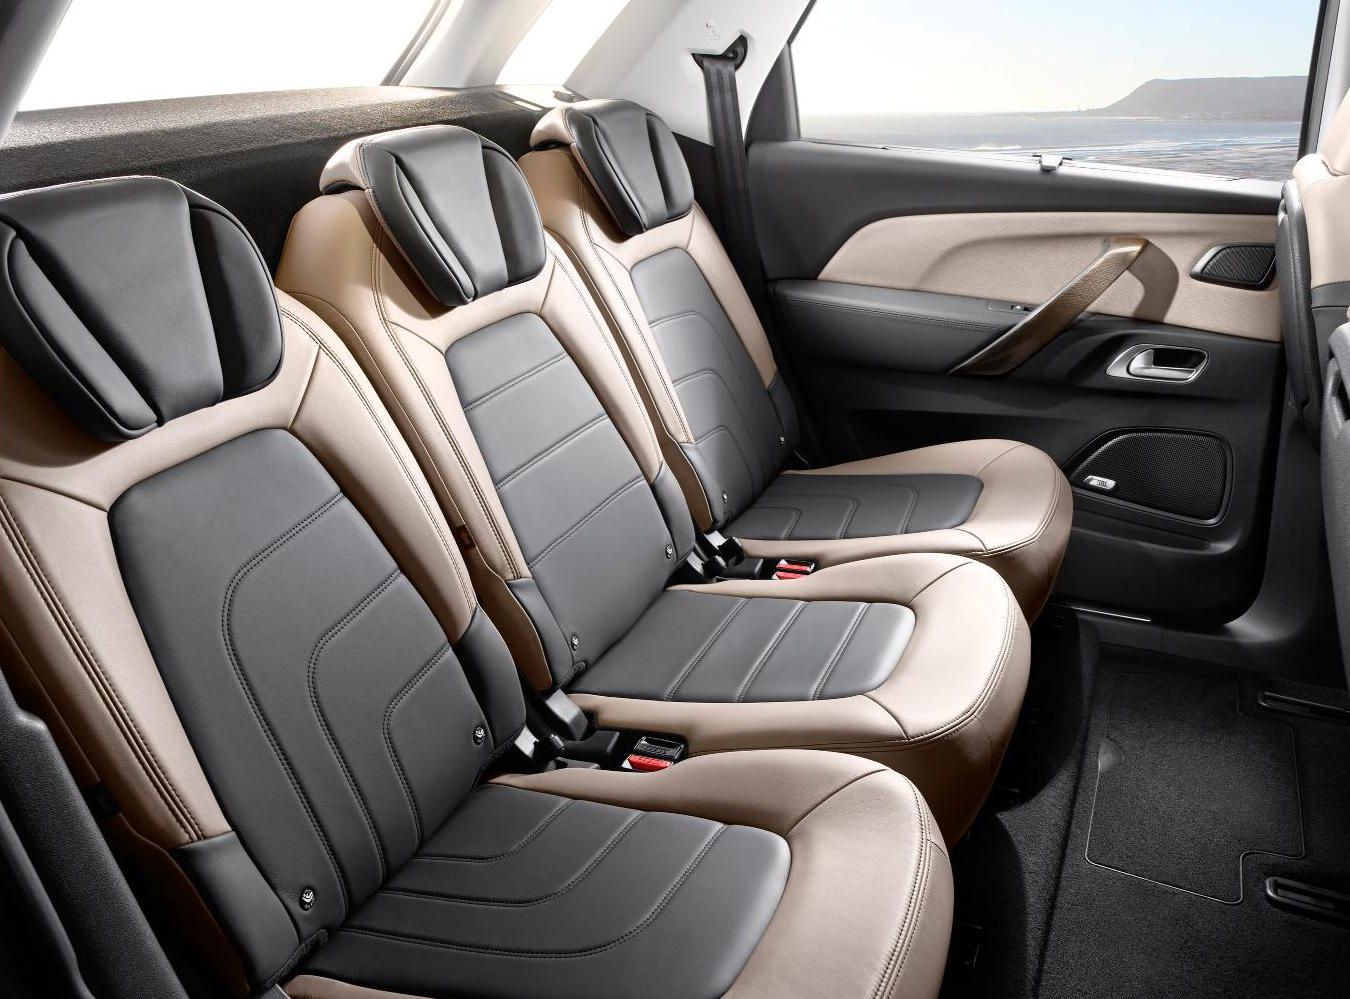 Second row of beige and black leather seats in Citroën C4 Spacetourer